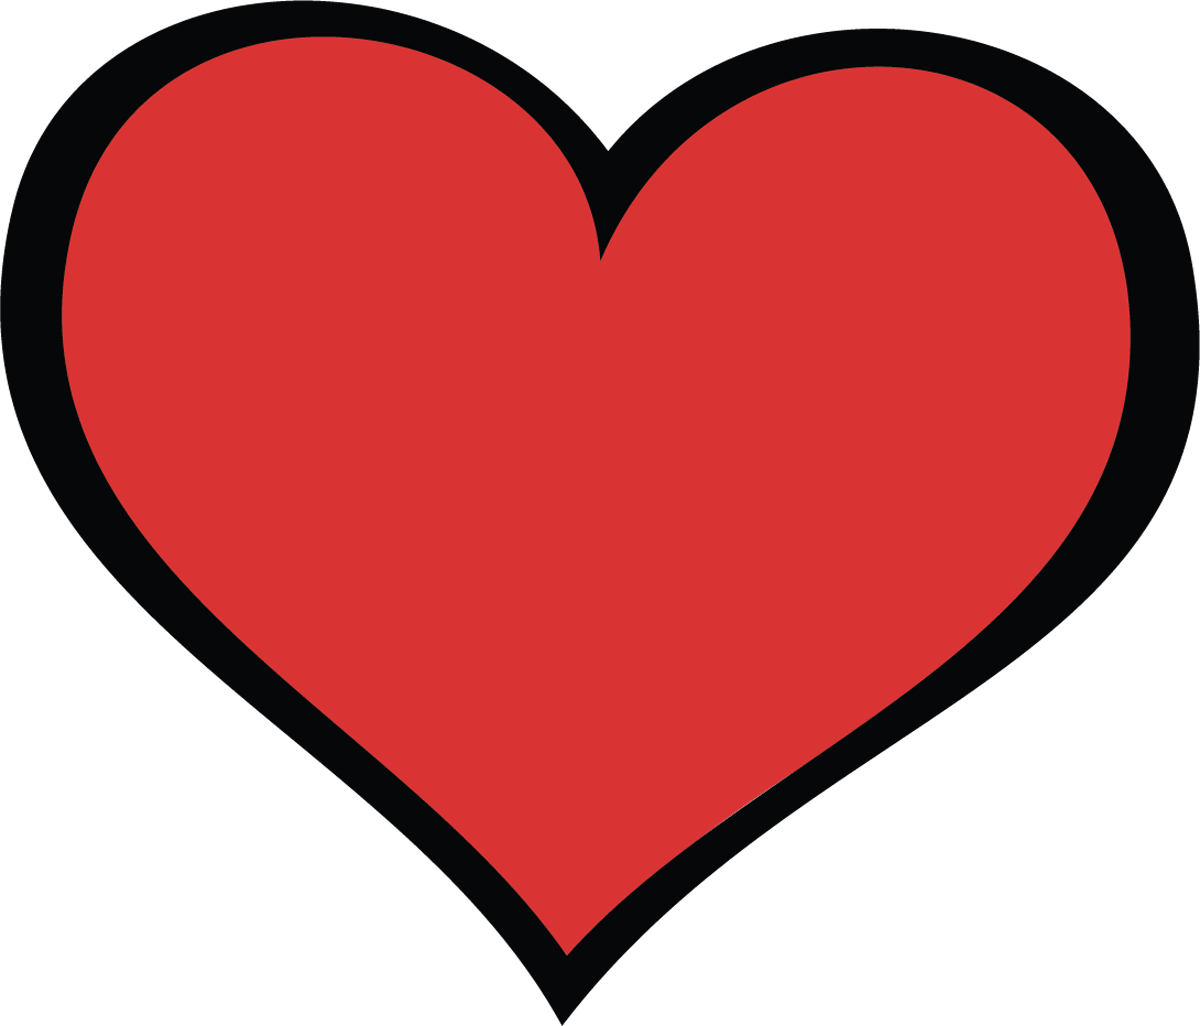 Love clipart. Free images